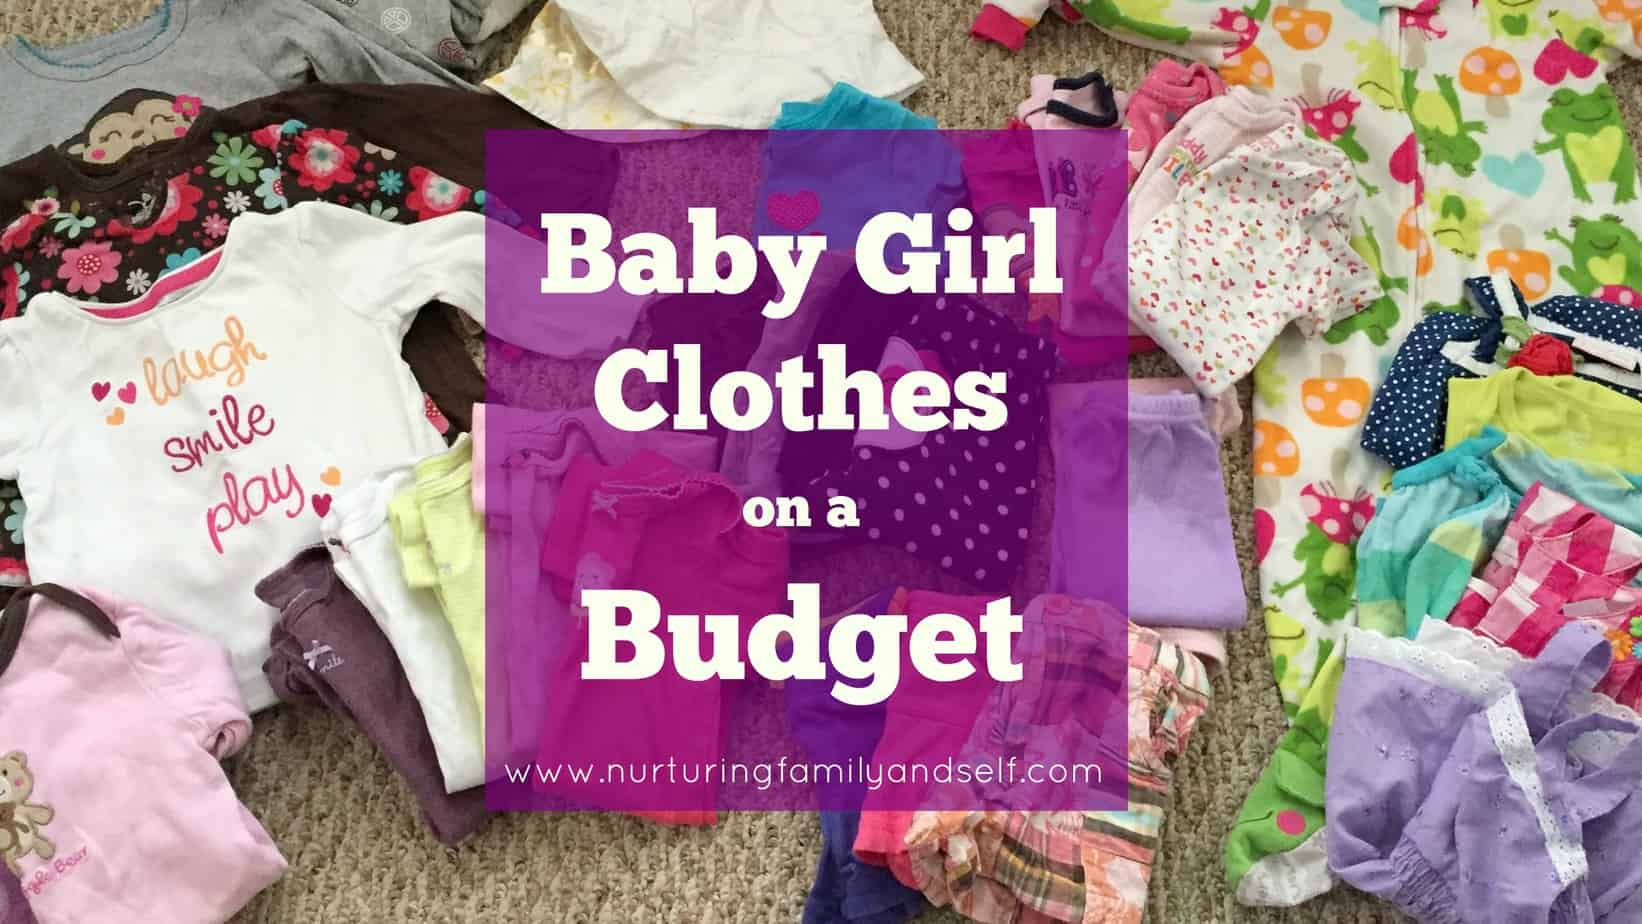 Baby Girl Clothes on a Budget Featured Image